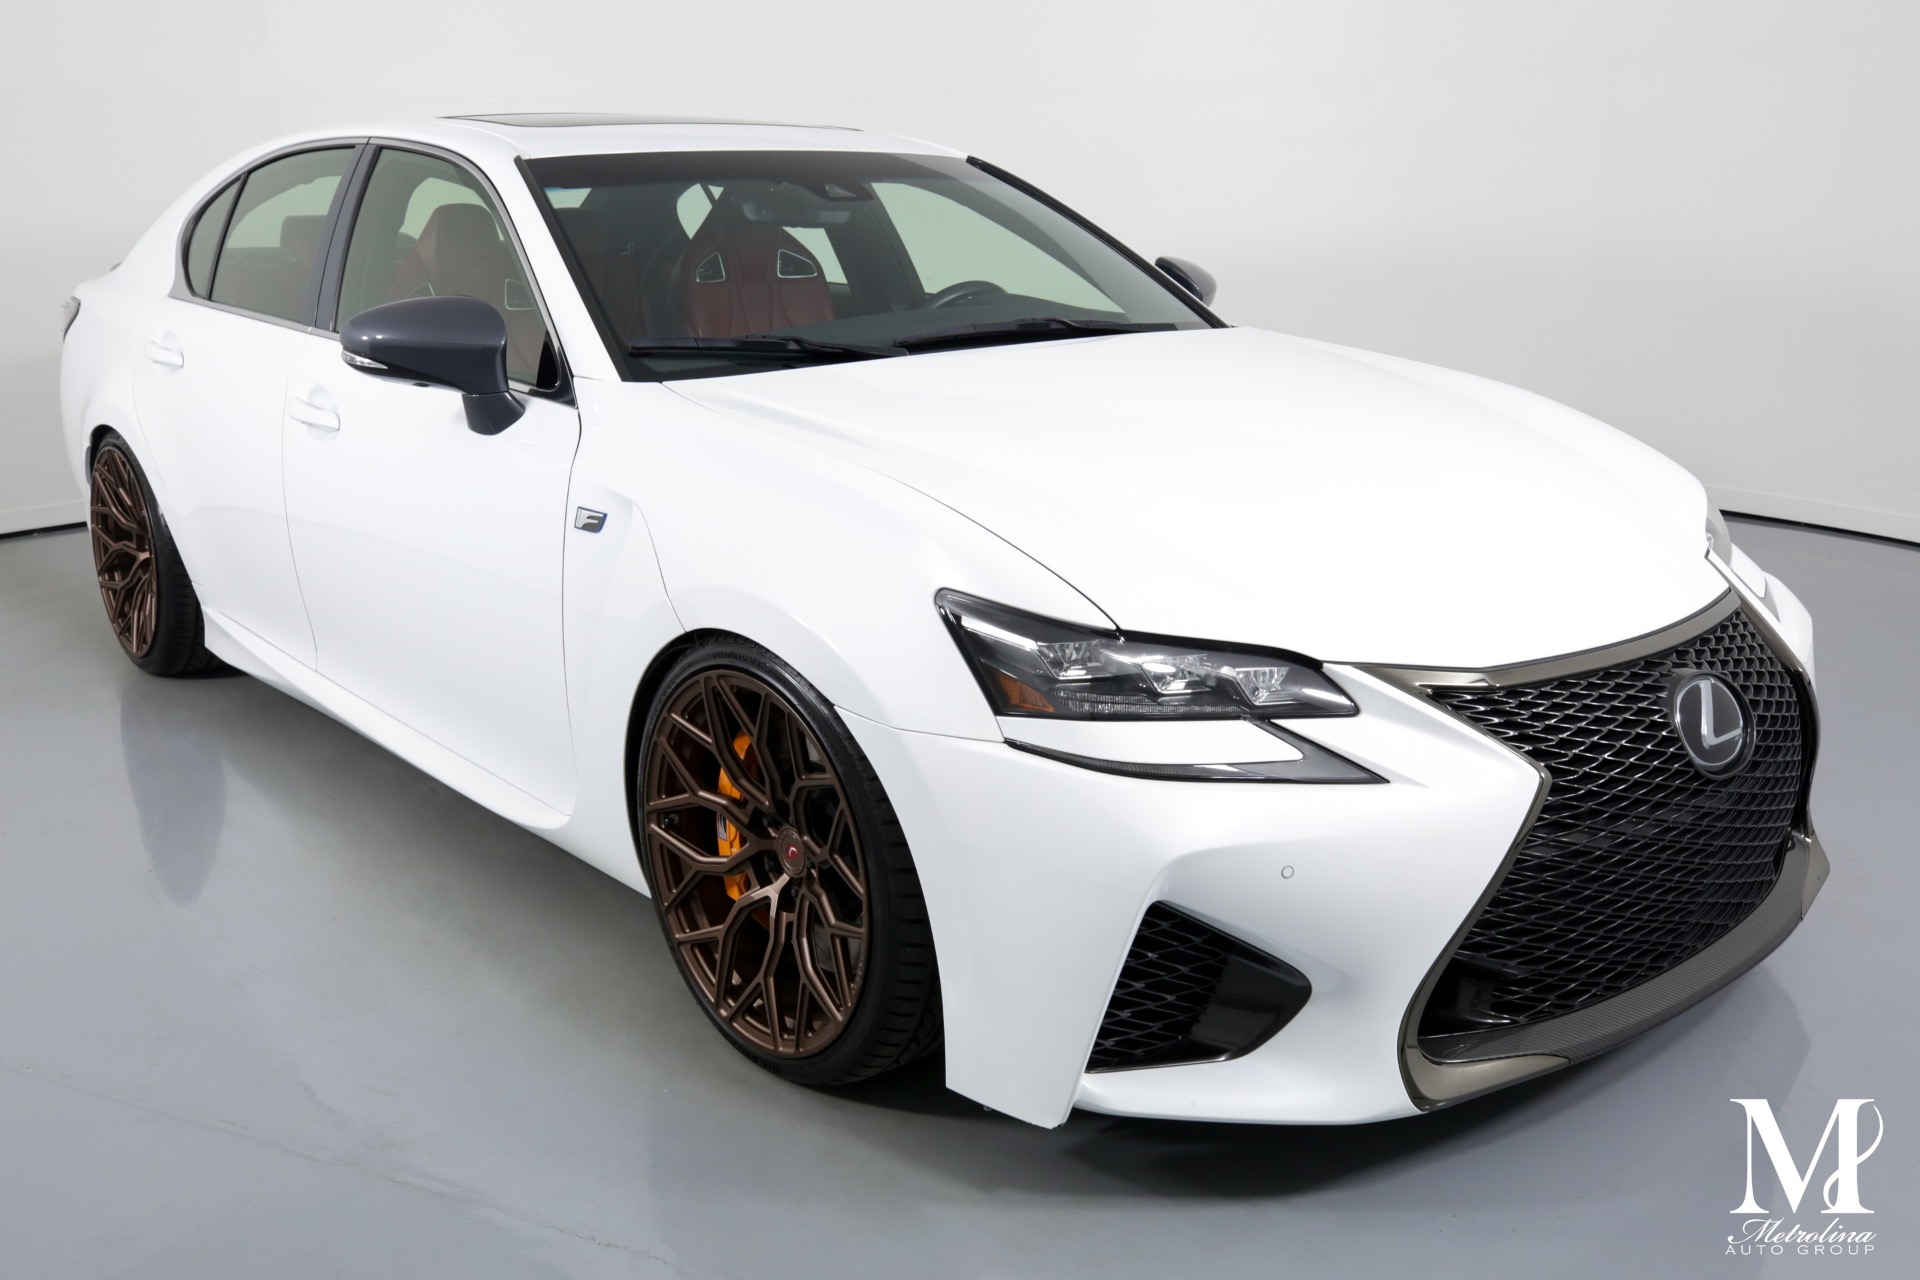 Used 2018 Lexus GS F for sale $61,996 at Metrolina Auto Group in Charlotte NC 28217 - 2